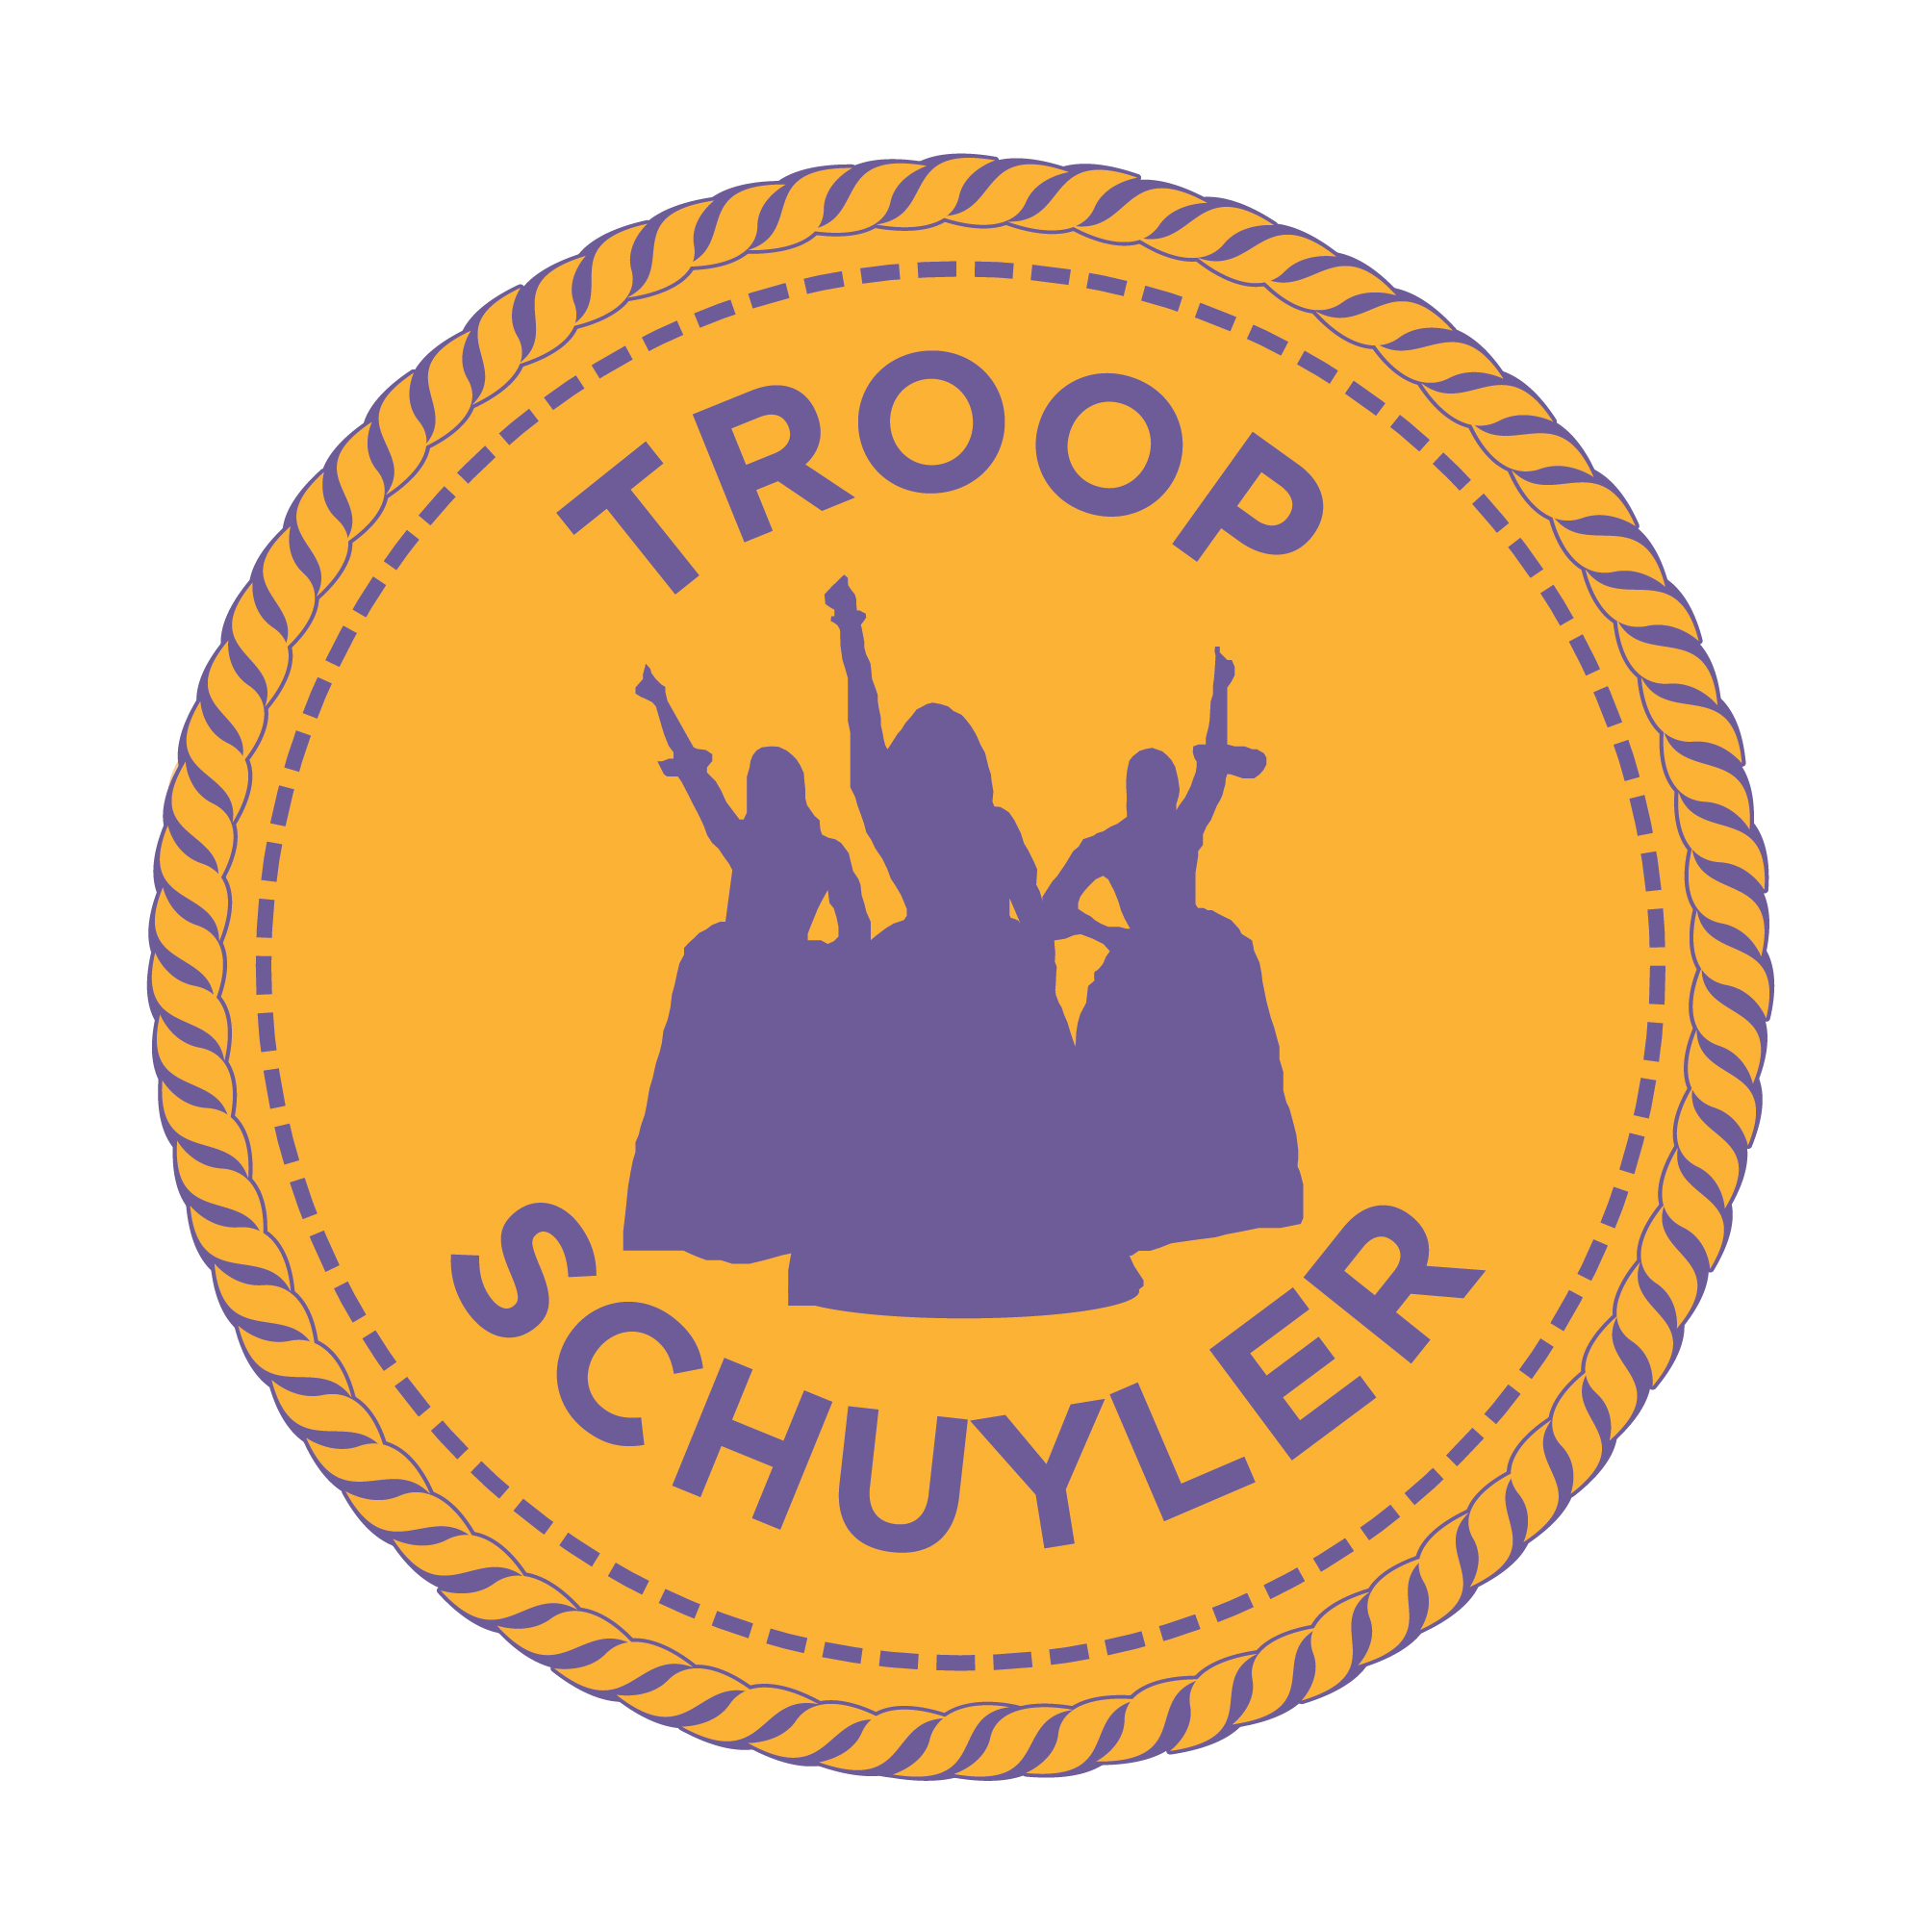 "A goldenrod merit badge that reads ""Troop Schuyler"" with purple silhouettes of the Schuyler Sisters from the Hamilton musical."